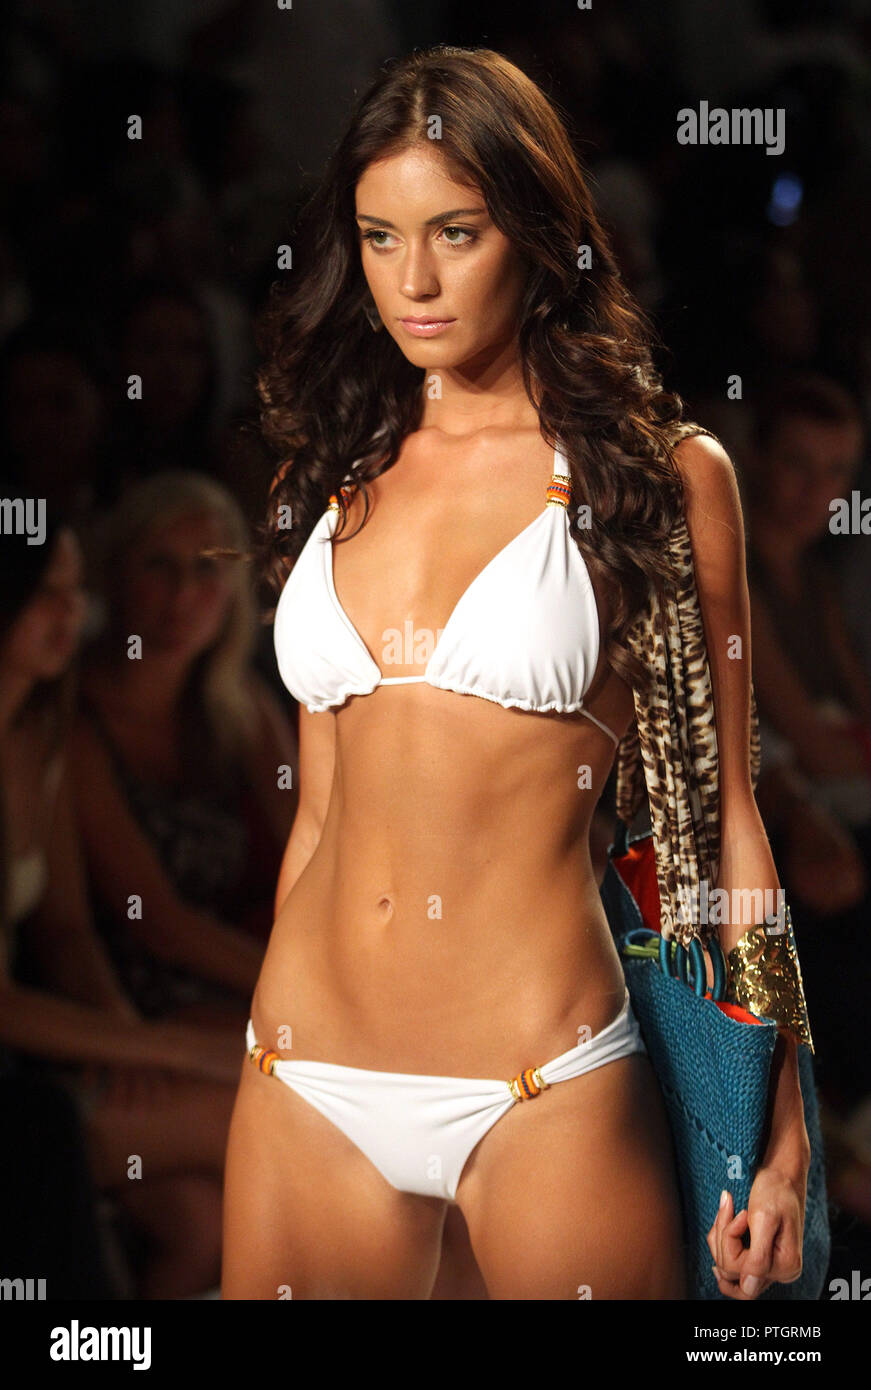 A model walks the runway during the Caffe Swimwear show at the 2012 Mercedes-Benz Fashion Week Swim, at the Raleigh Hotel in Miami Beach on July 16, 2011. - Stock Image